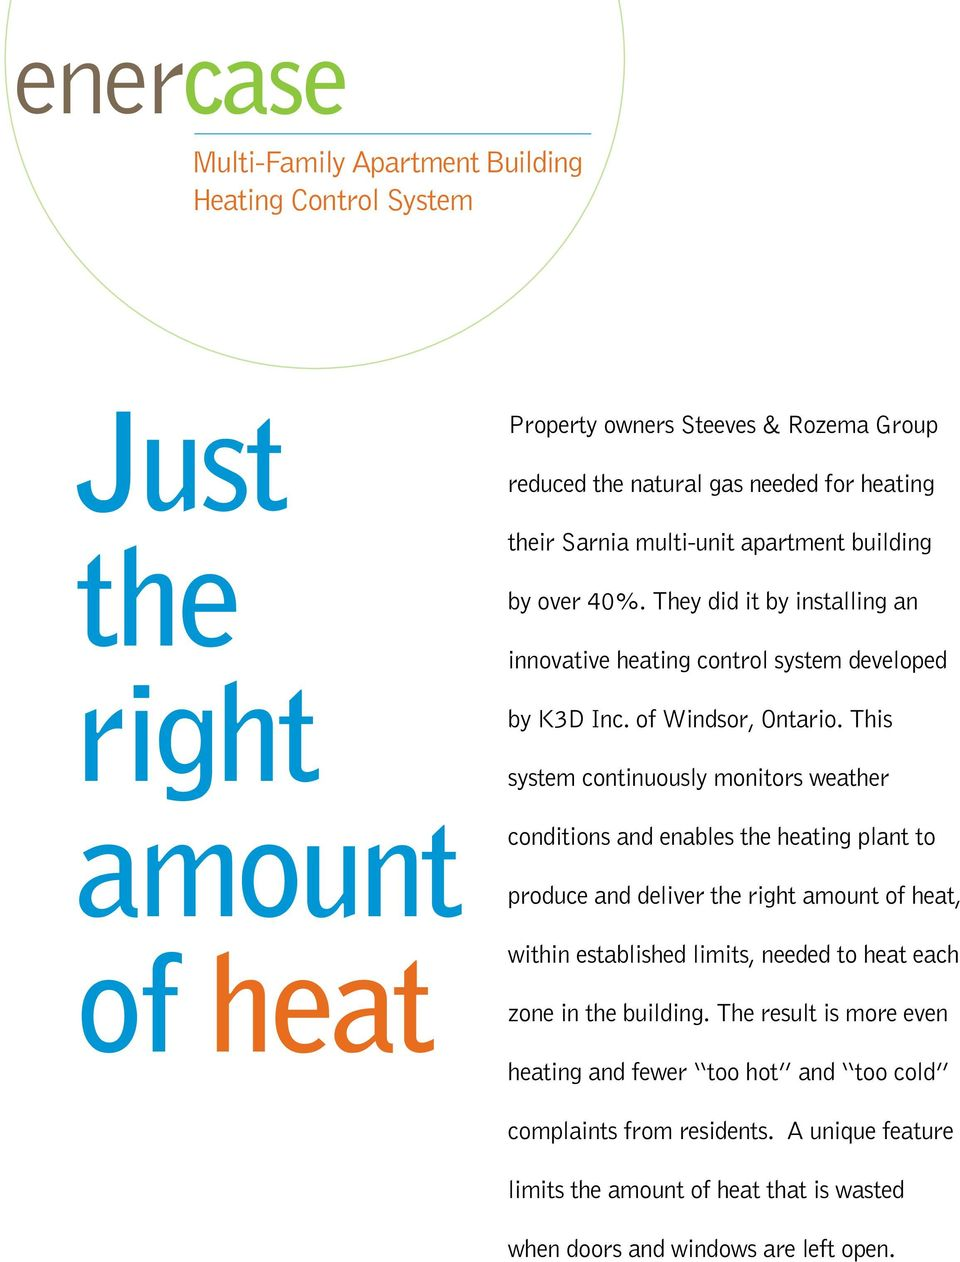 This system continuously monitors weather conditions and enables the heating plant to produce and deliver the right amount of heat, within established limits, needed to heat each